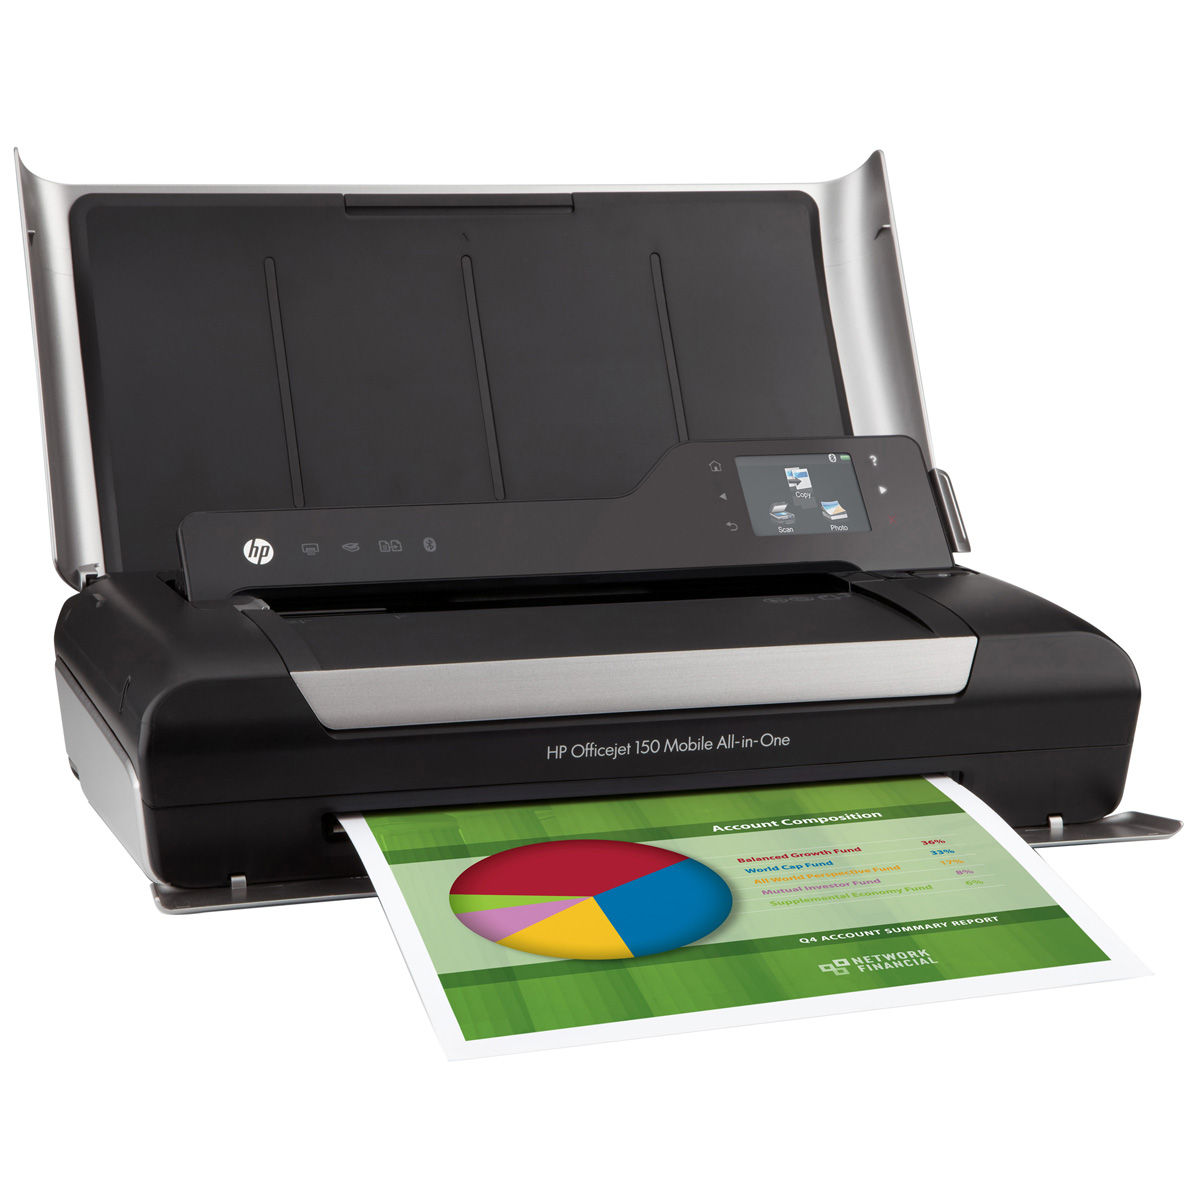 hp officejet 150 mobile all in one imprimante multifonction hp sur. Black Bedroom Furniture Sets. Home Design Ideas